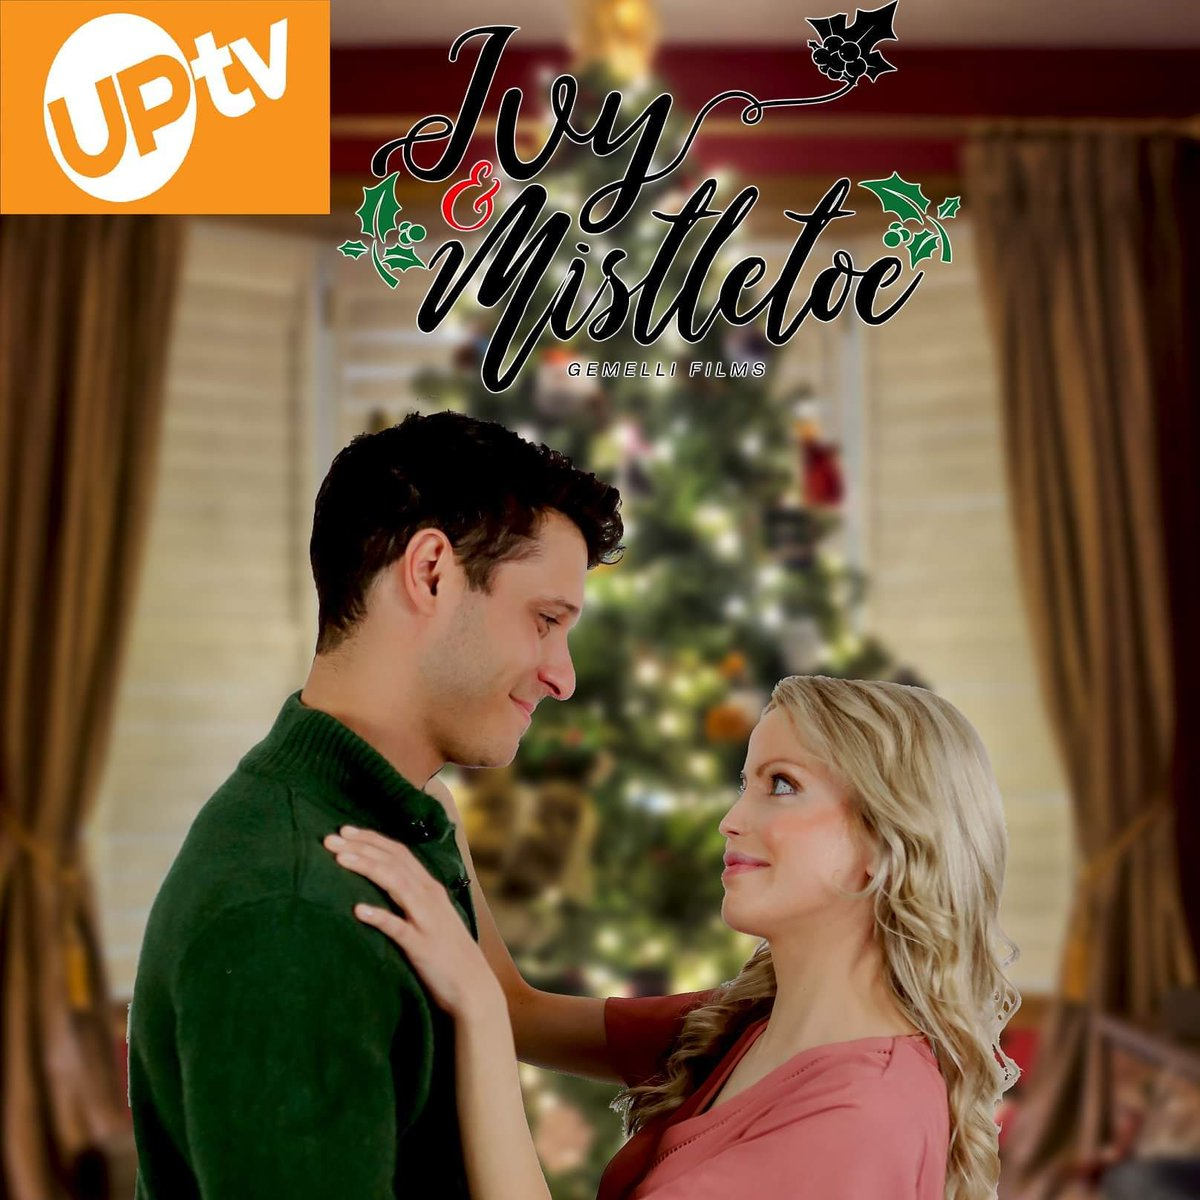 So awesome and thankful for being a part of Ivy & Mistletoe by Candice Cain. It was picked up by UPTV and I am super excited!